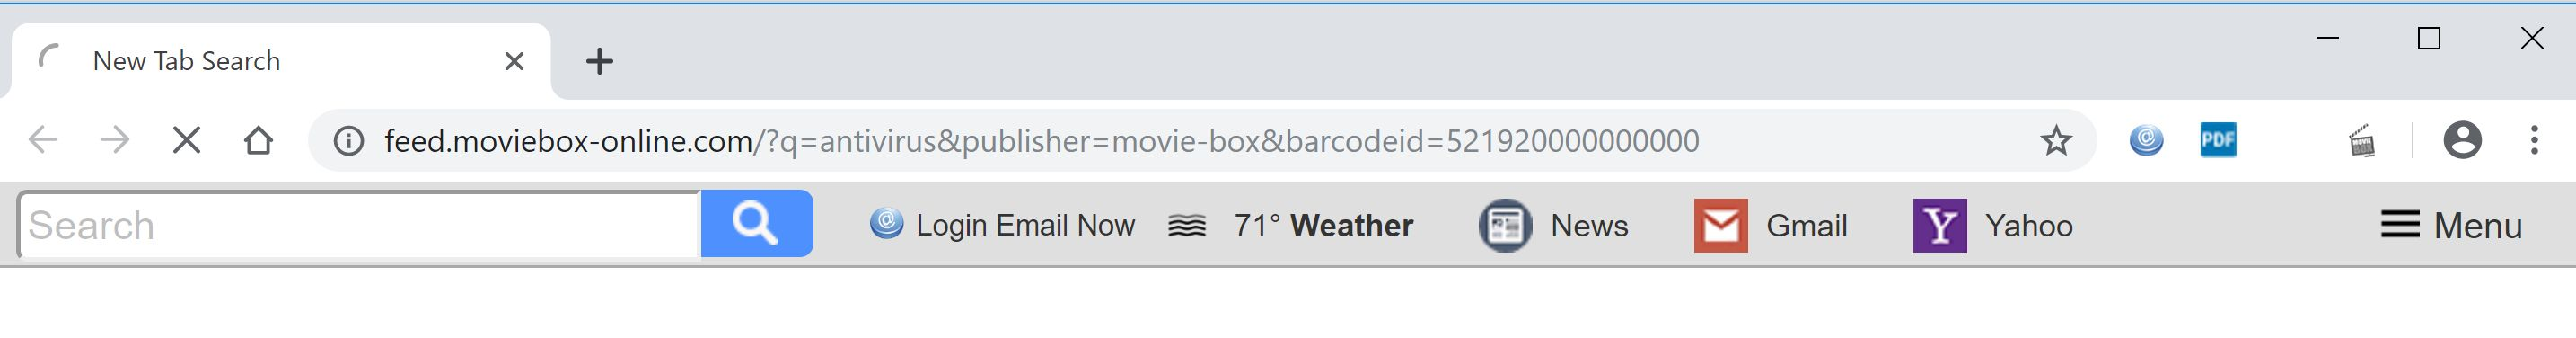 Image: Google Chrome is redirected to Feed.moviebox-online.com